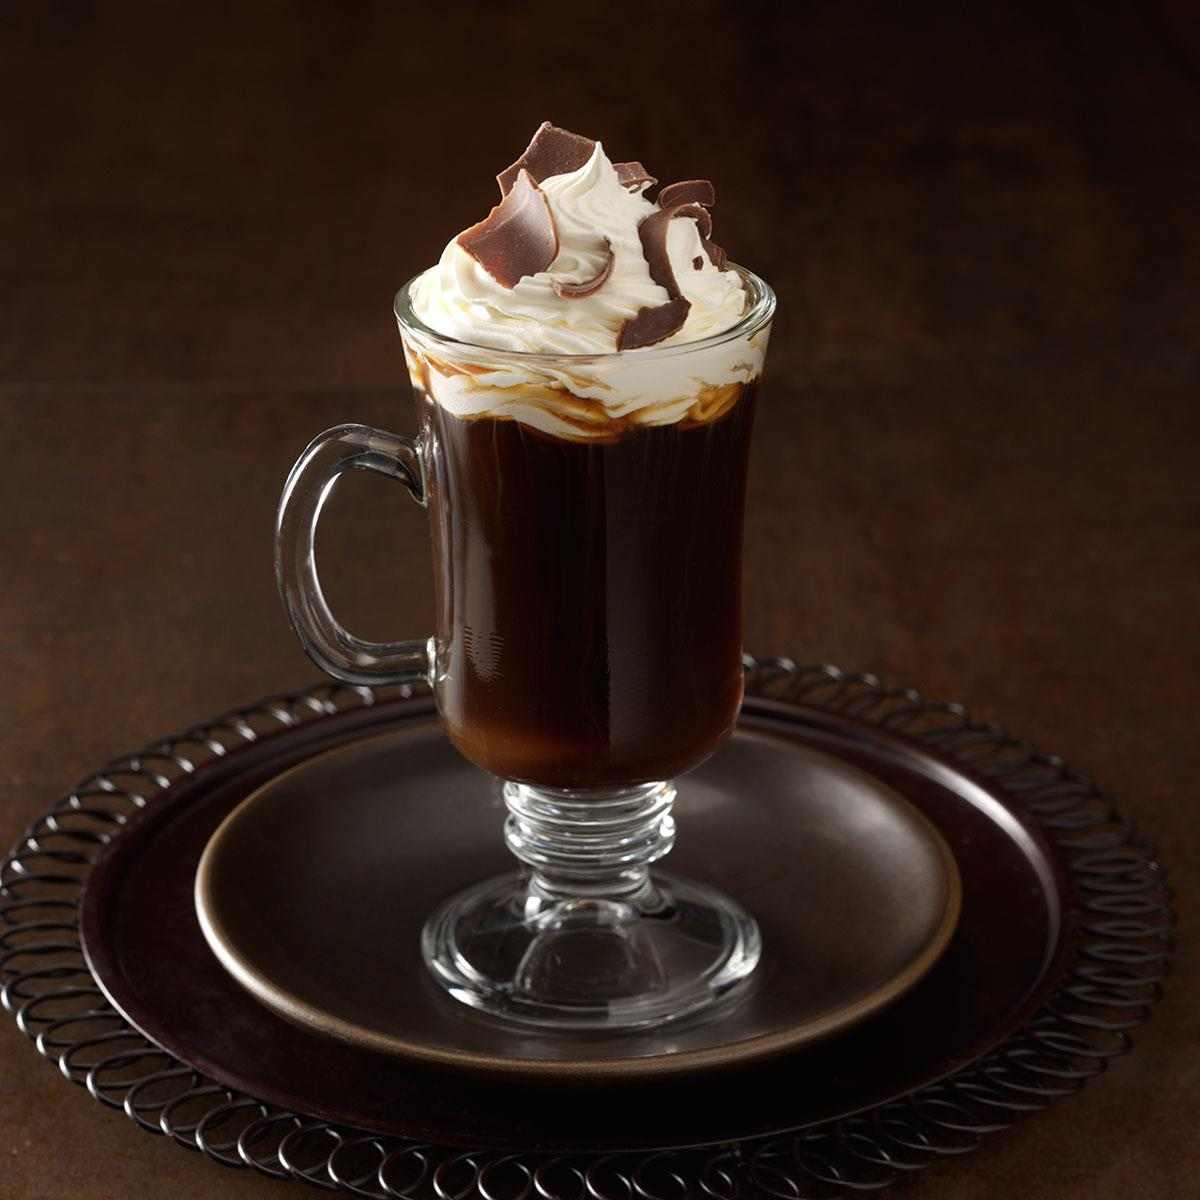 Spanish Coffee Recipe How To Make It Taste Of Home